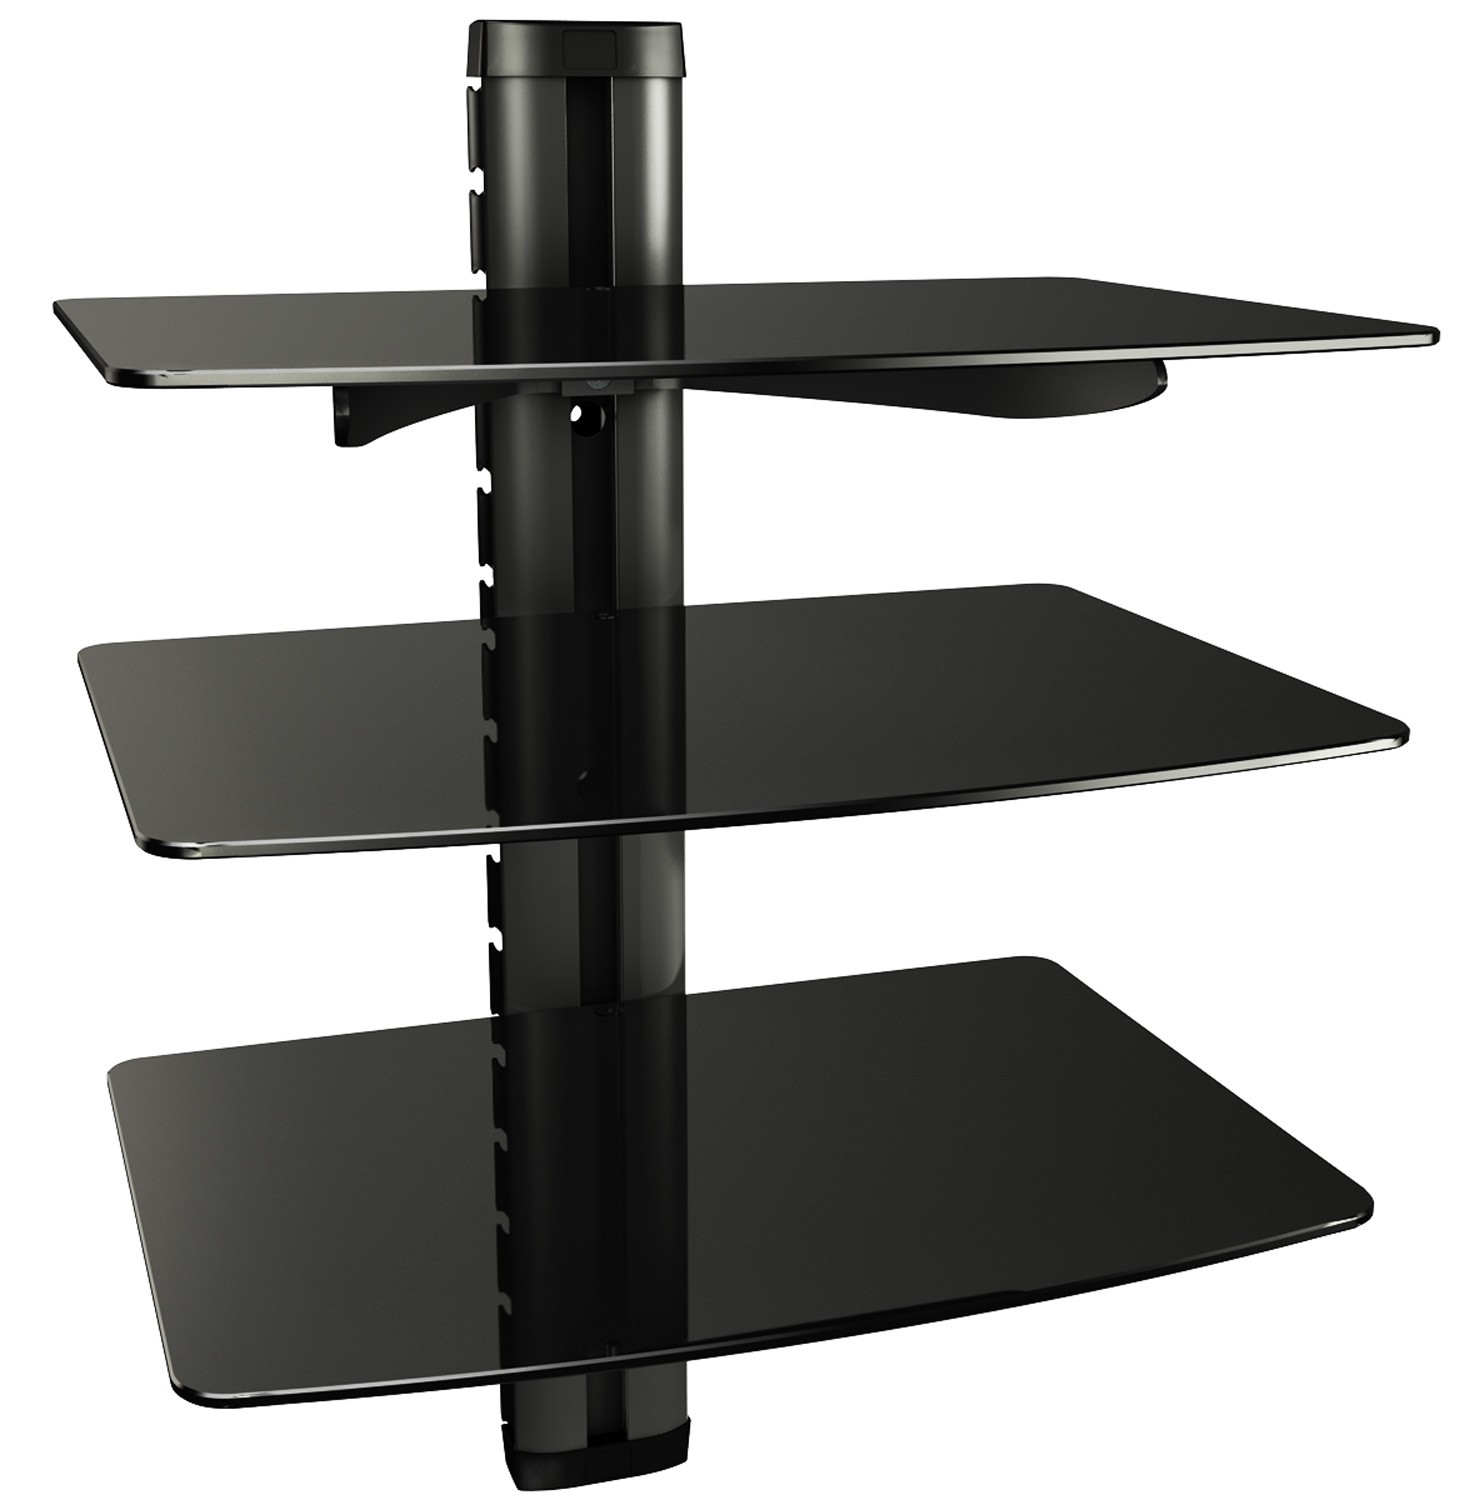 glas regal hifi wandhalterung dvd glasregal wand board xl. Black Bedroom Furniture Sets. Home Design Ideas